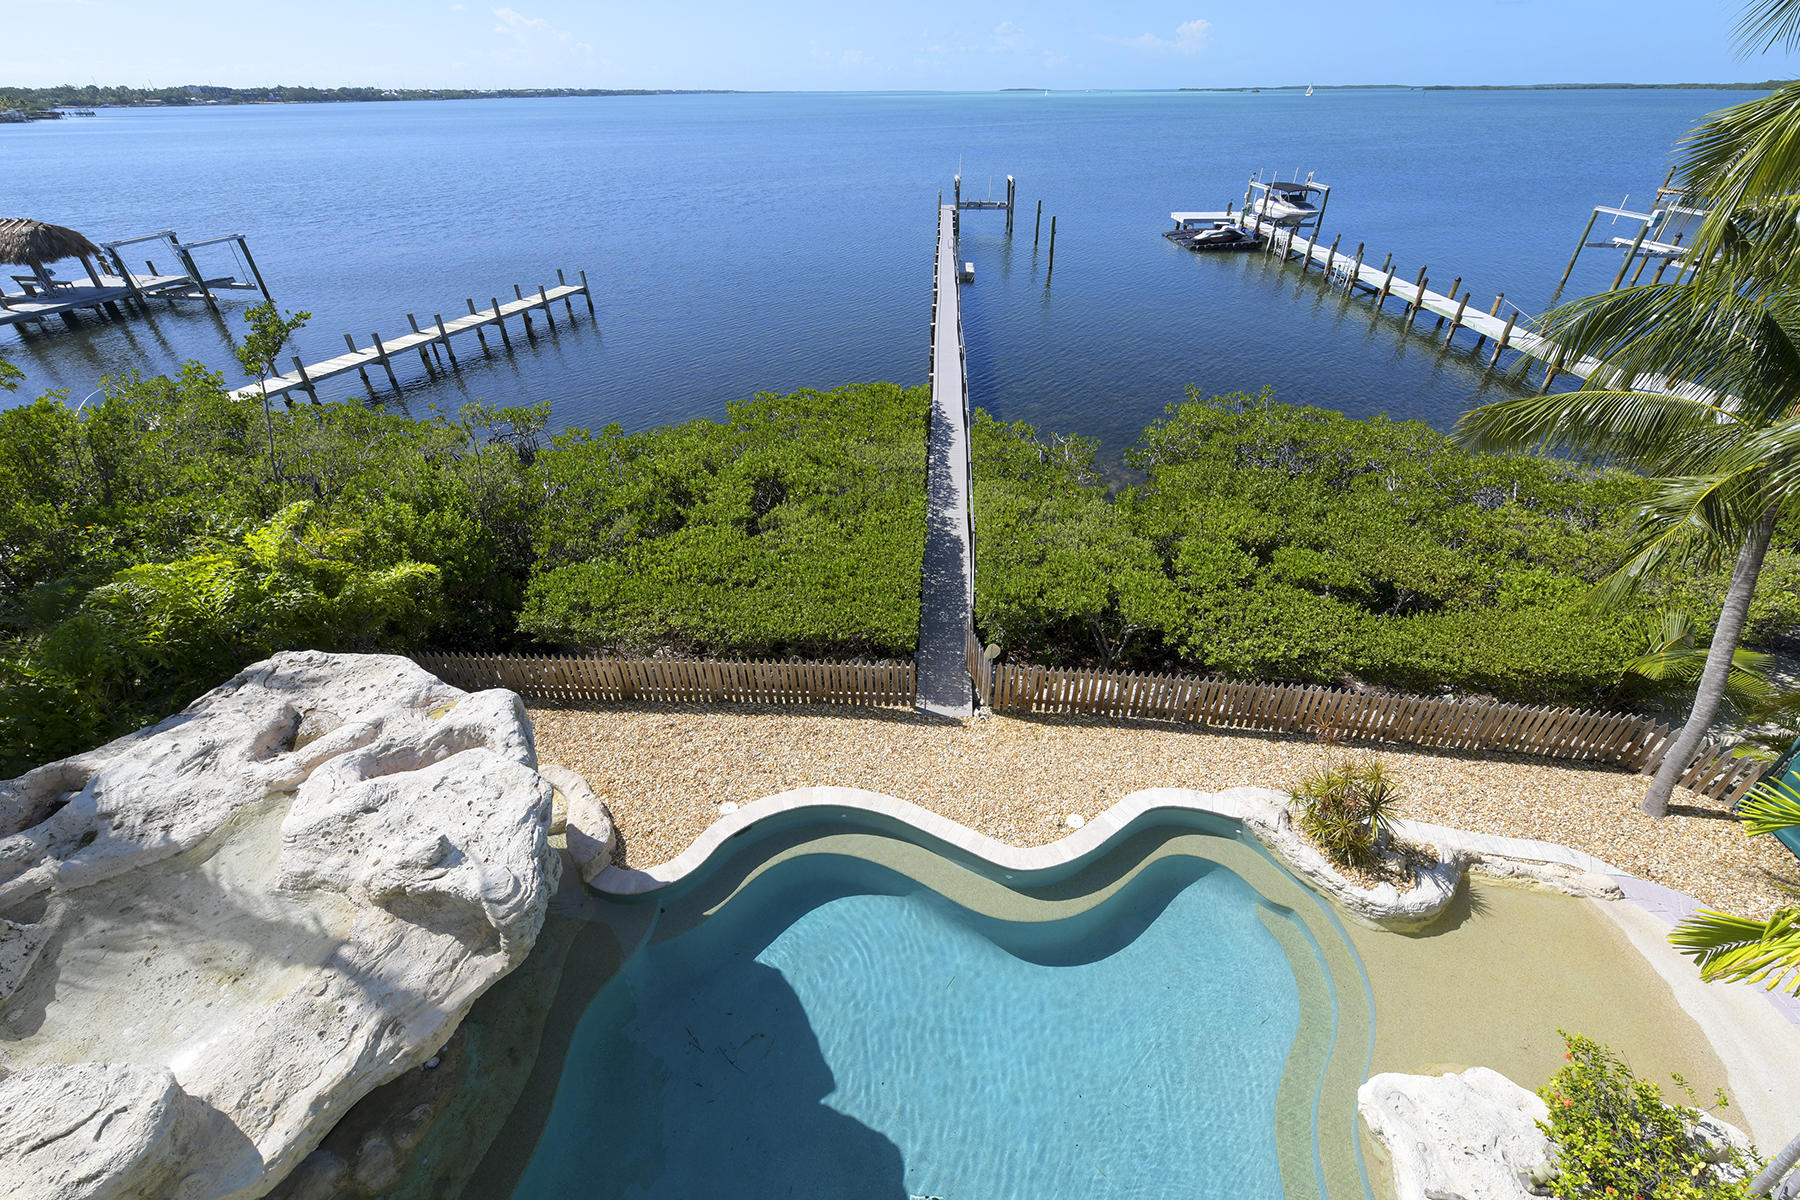 Property for Sale at 31 N Bounty Lane, Key Largo, FL 31 N Bounty Lane Key Largo, Florida 33037 United States